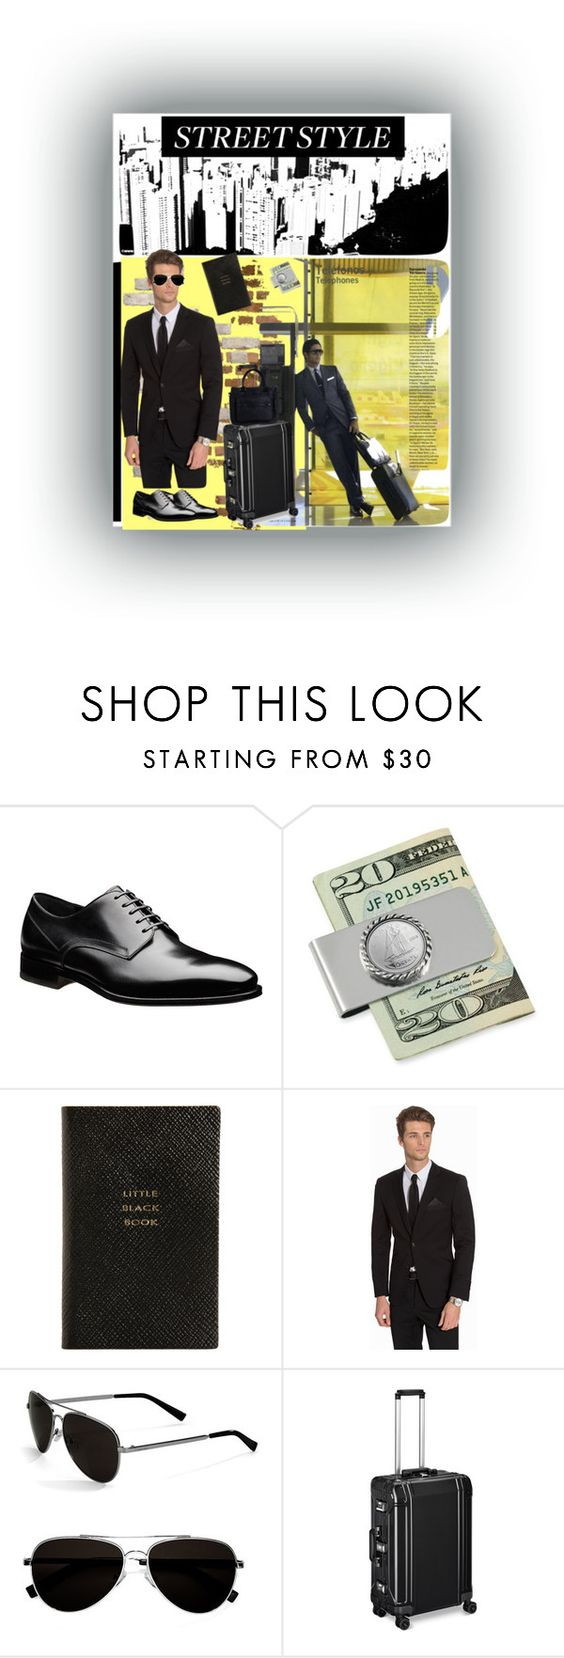 """""""Mens Street Style"""" by sheri-gifford-pauline ❤ liked on Polyvore featuring American Coin Treasures, Smythson, Difficult By P., Calvin Klein, ZERO Halliburton, mens, men, men's wear, mens wear and male"""